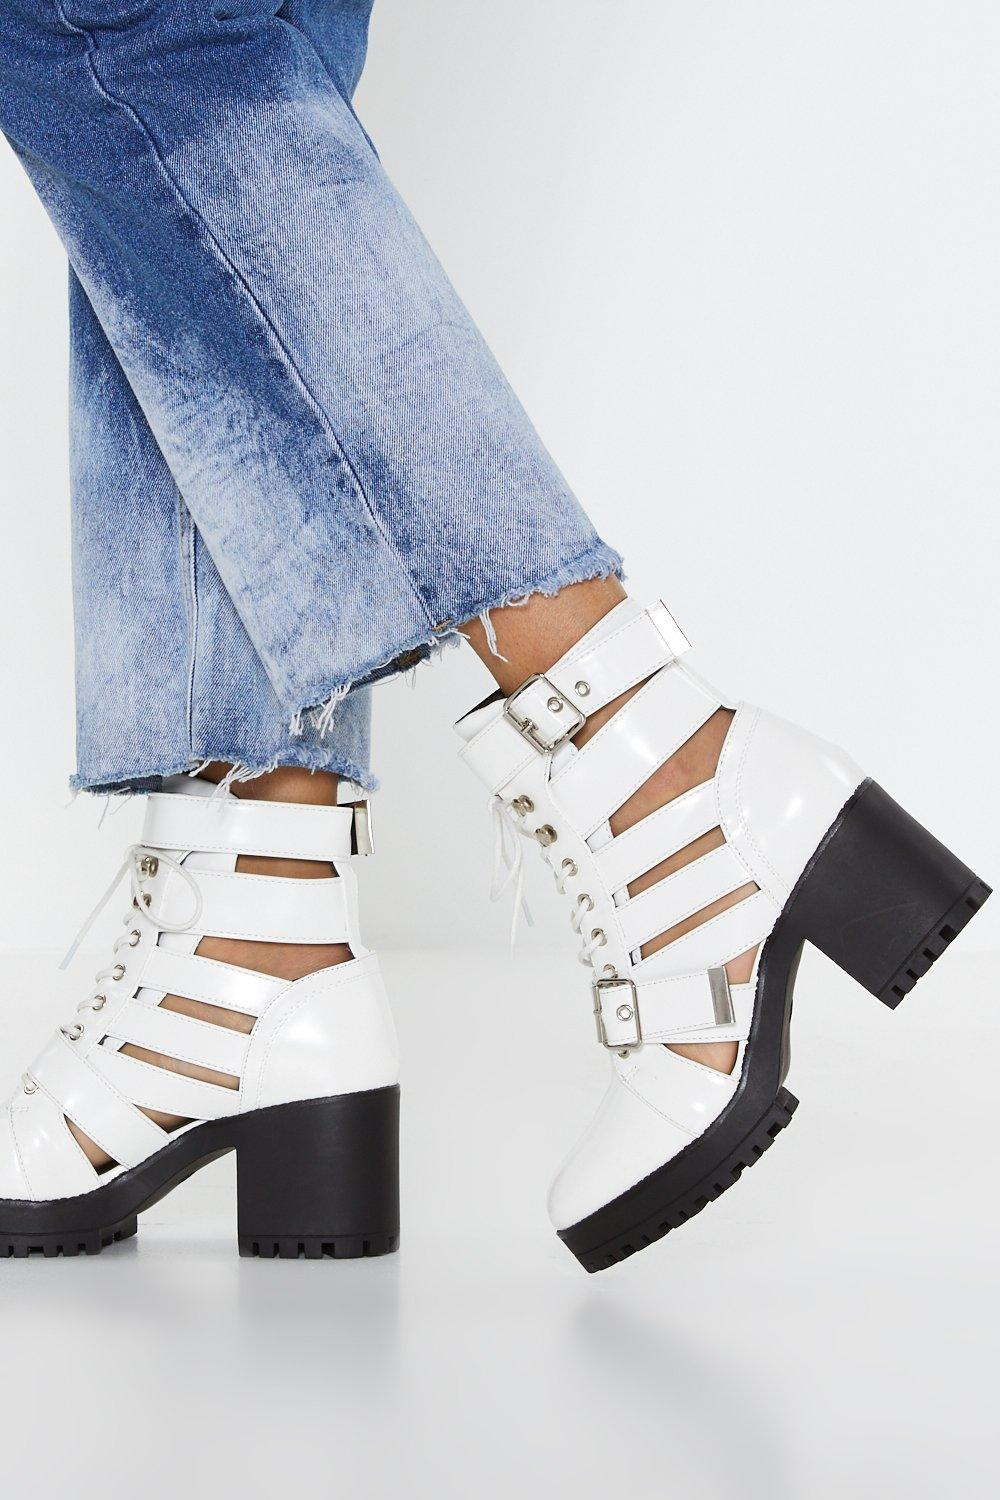 c361fc2e55 Cut-Out of Luck Block Heel Boots | Shop Clothes at Nasty Gal!